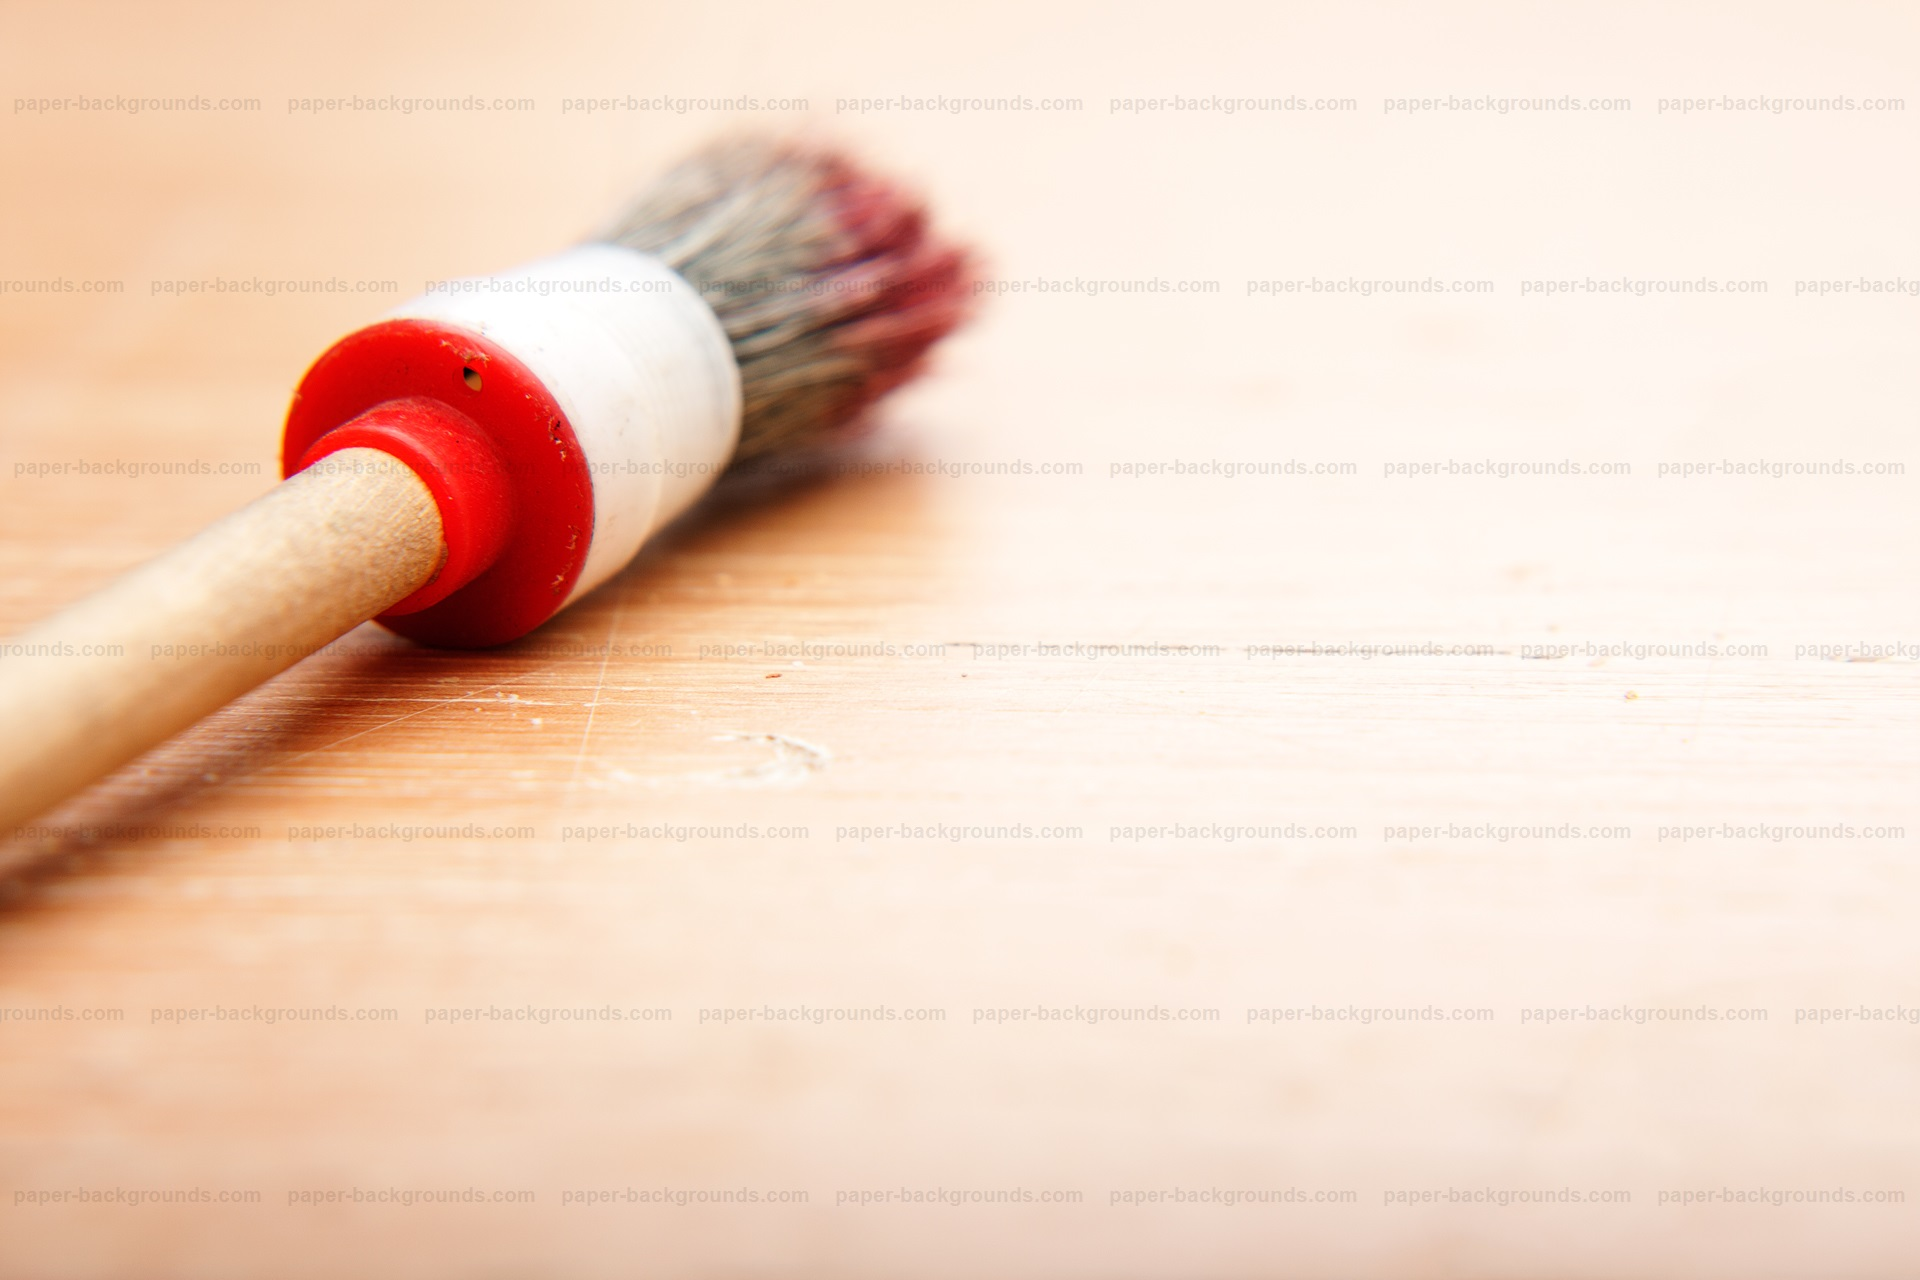 Paint Brush Close-up Macro on Table HD